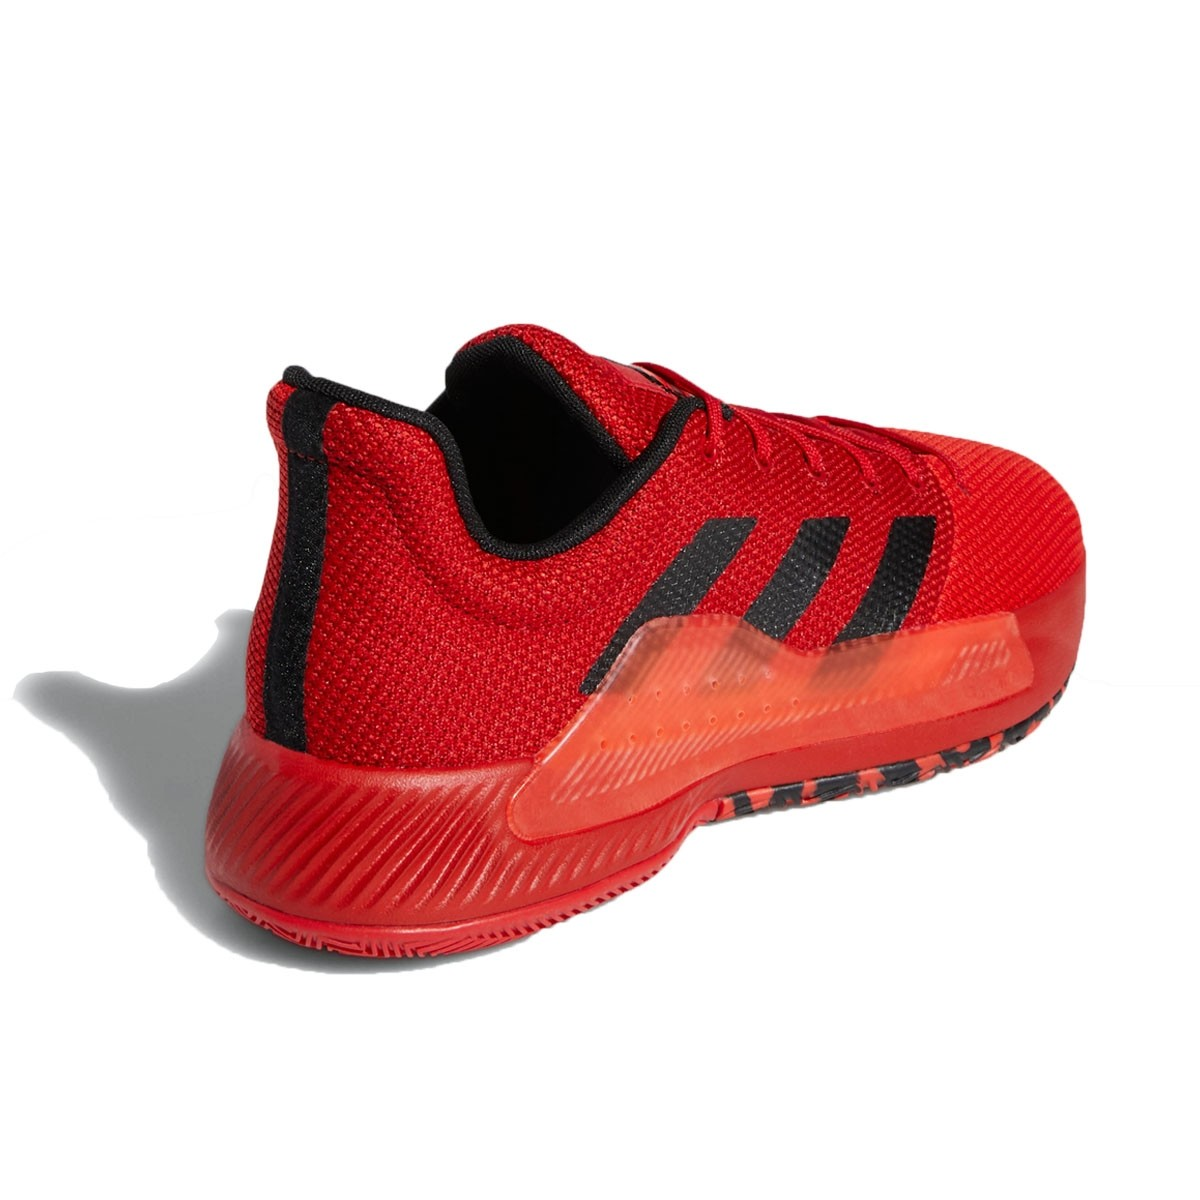 4ee2485a2cd Bujy ADIDAS Pro Bounce Madness Low  Louisville  Basketball shoes ...